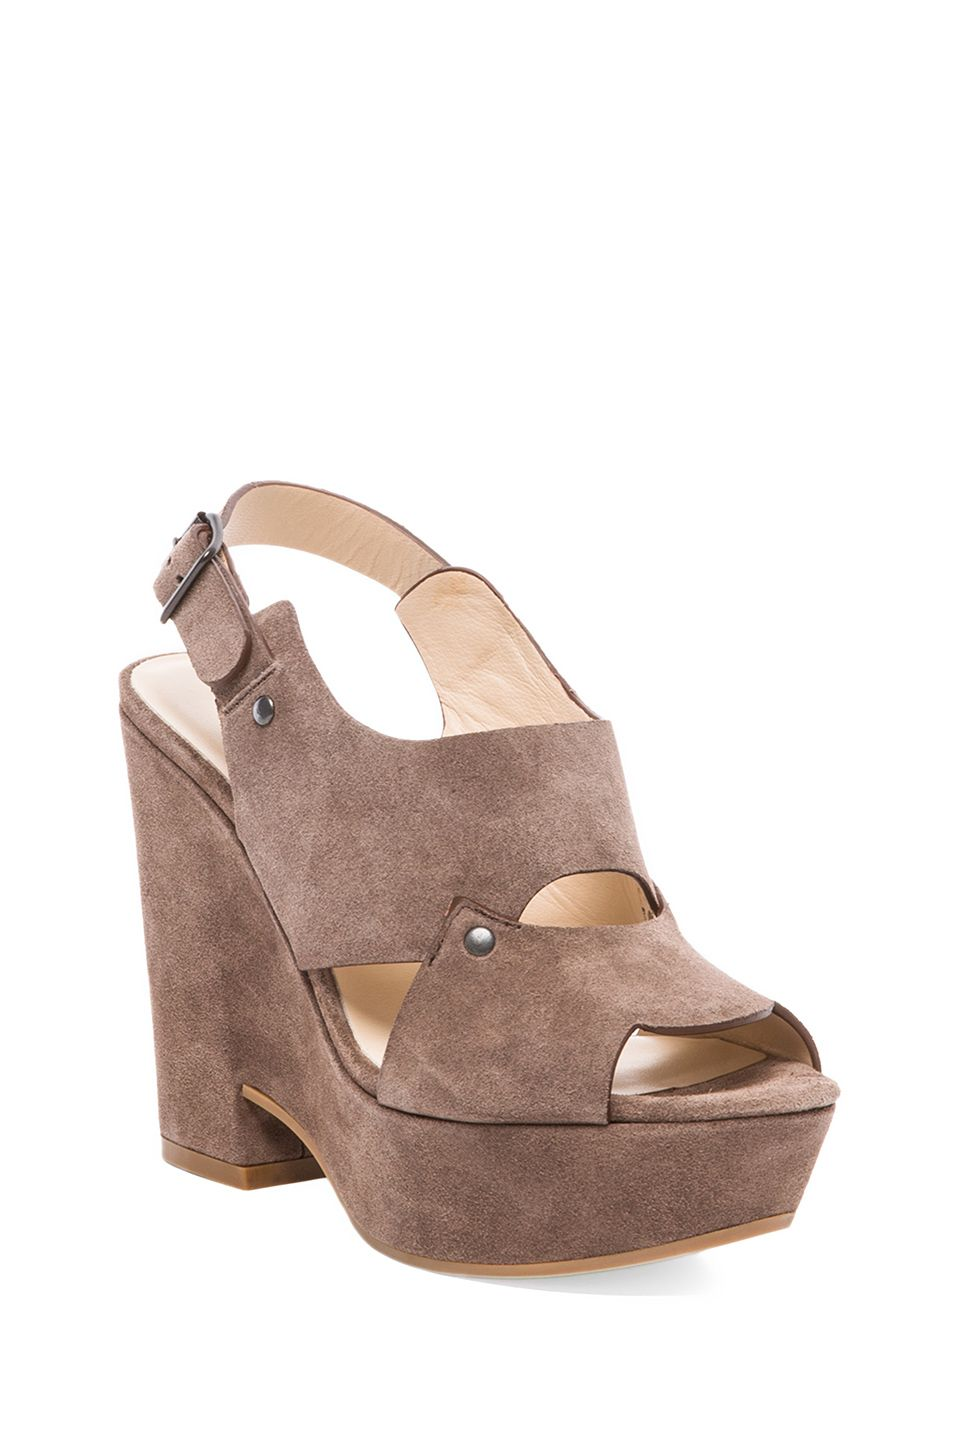 c55f347f918 See By Chloe Ankle Wedge in Steppe